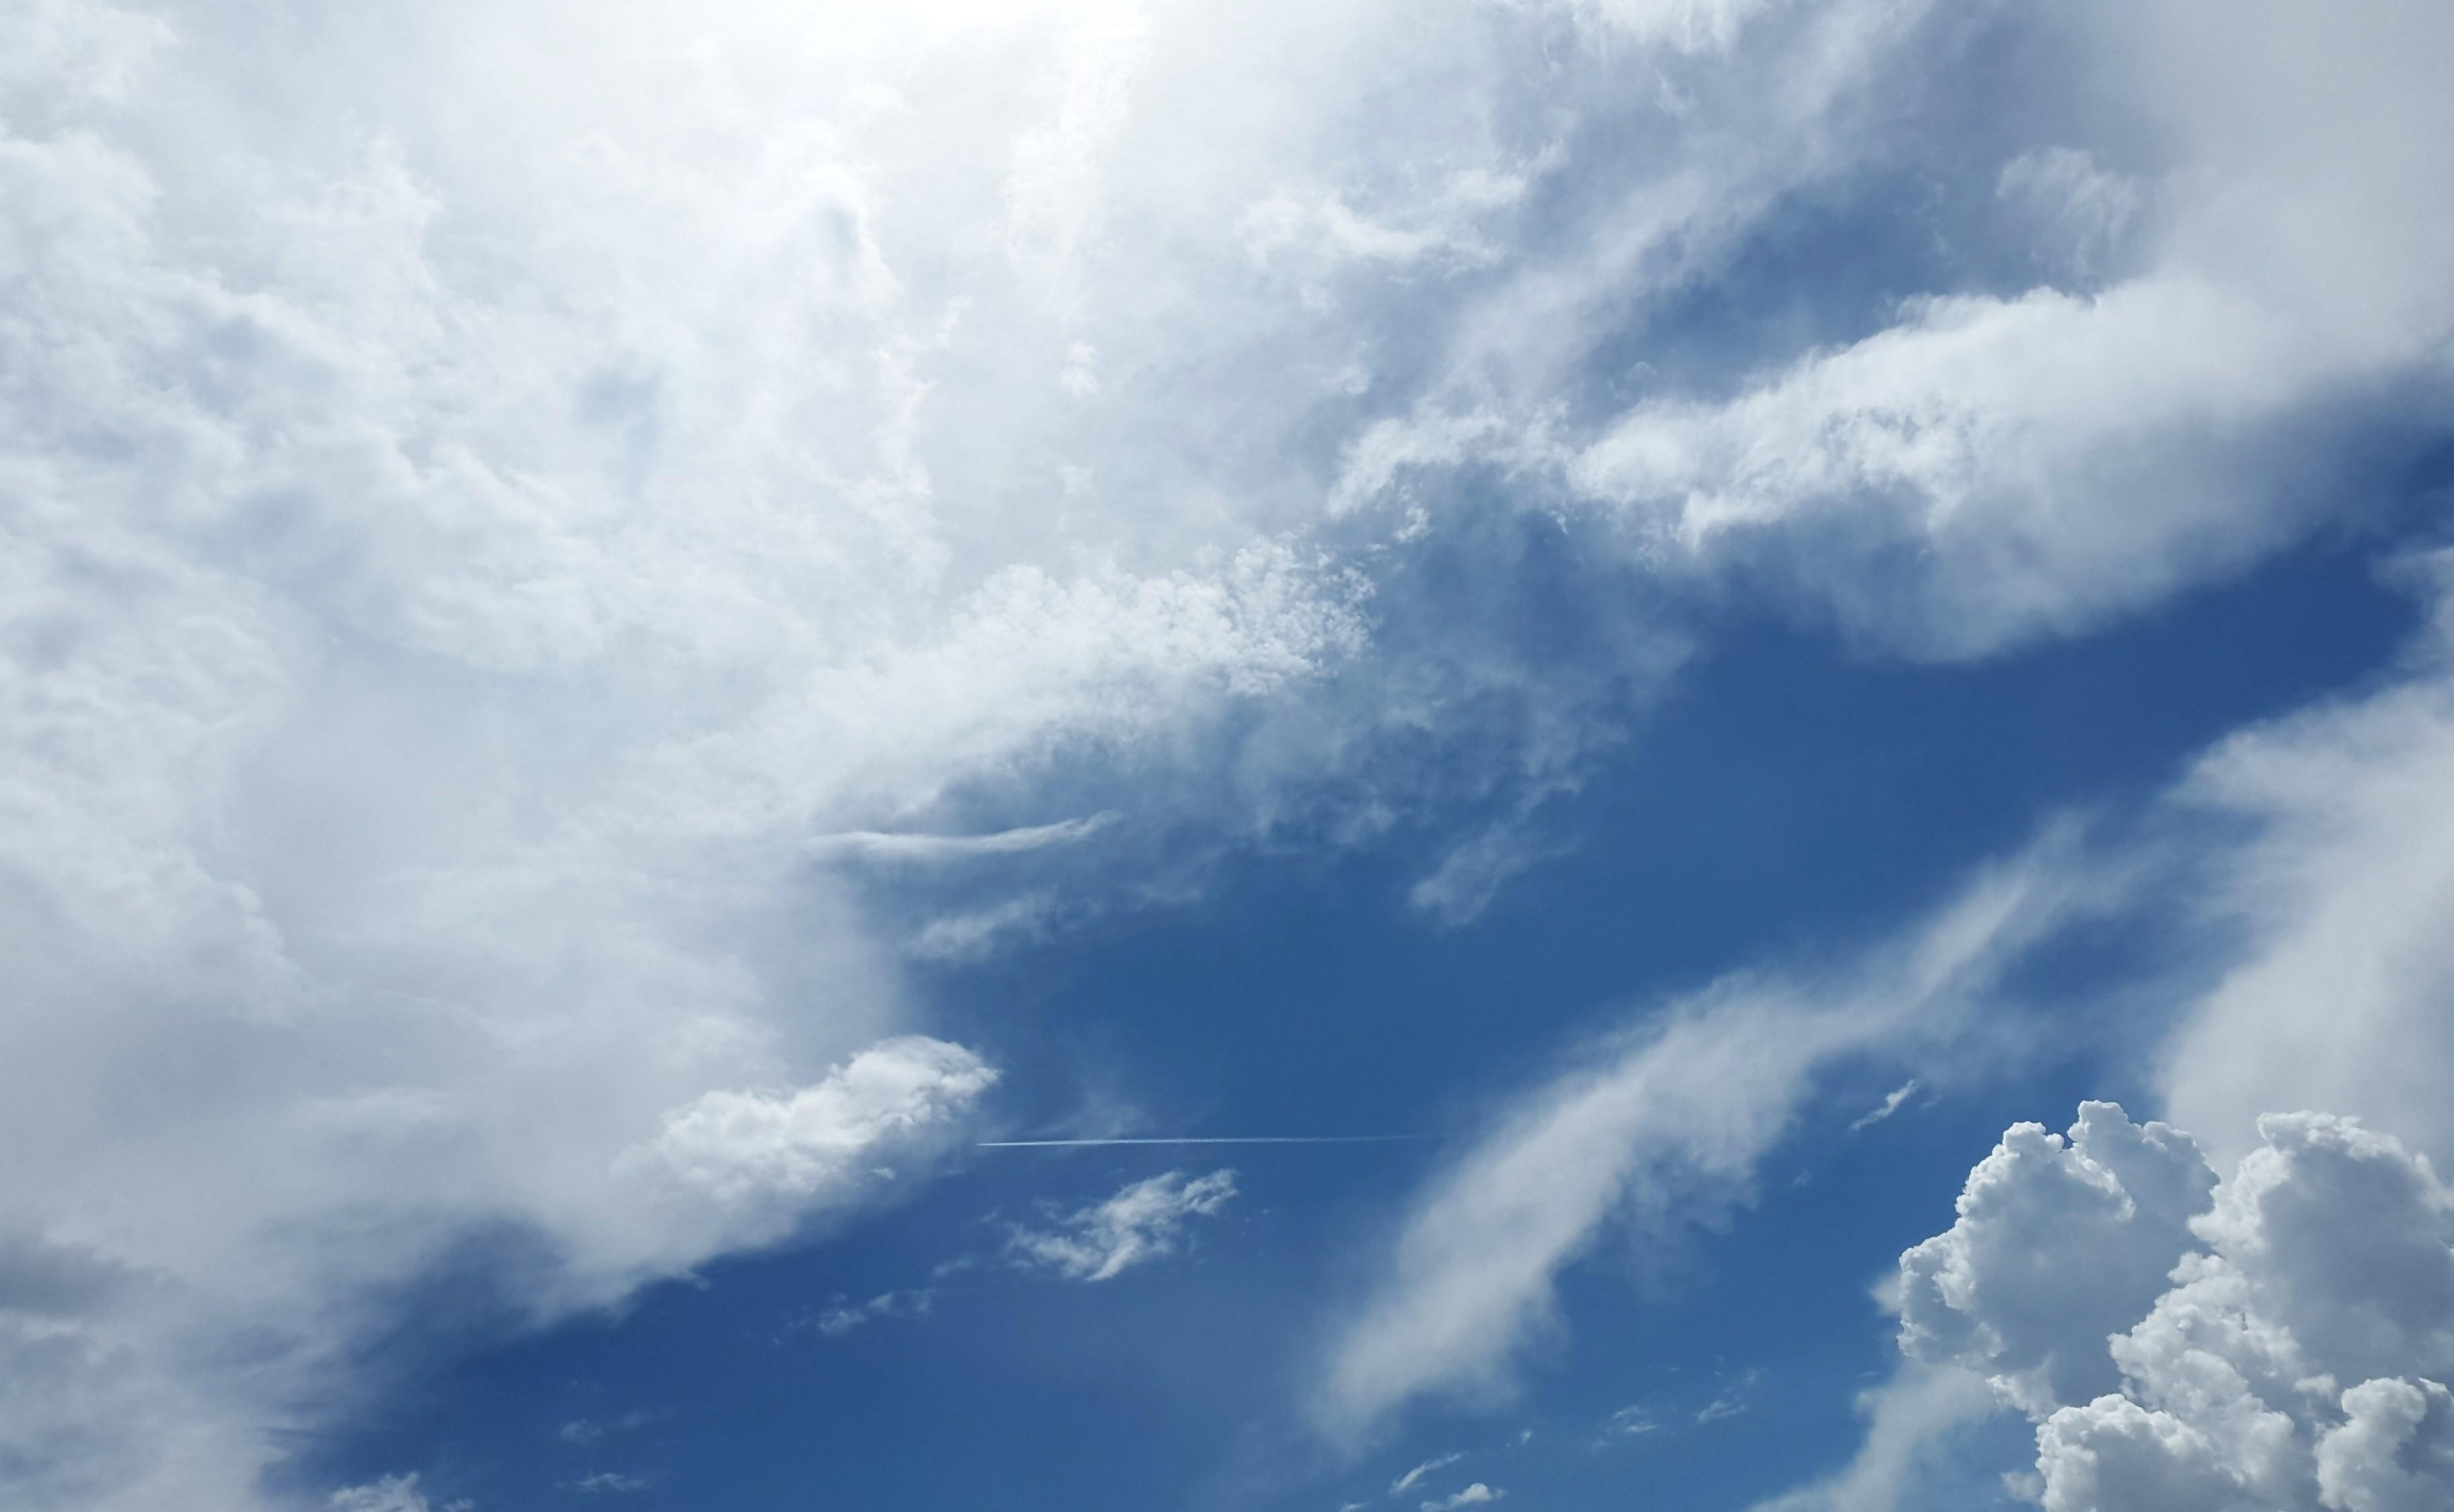 Download 3714x2289 Clouds, Blue Sky Wallpapers